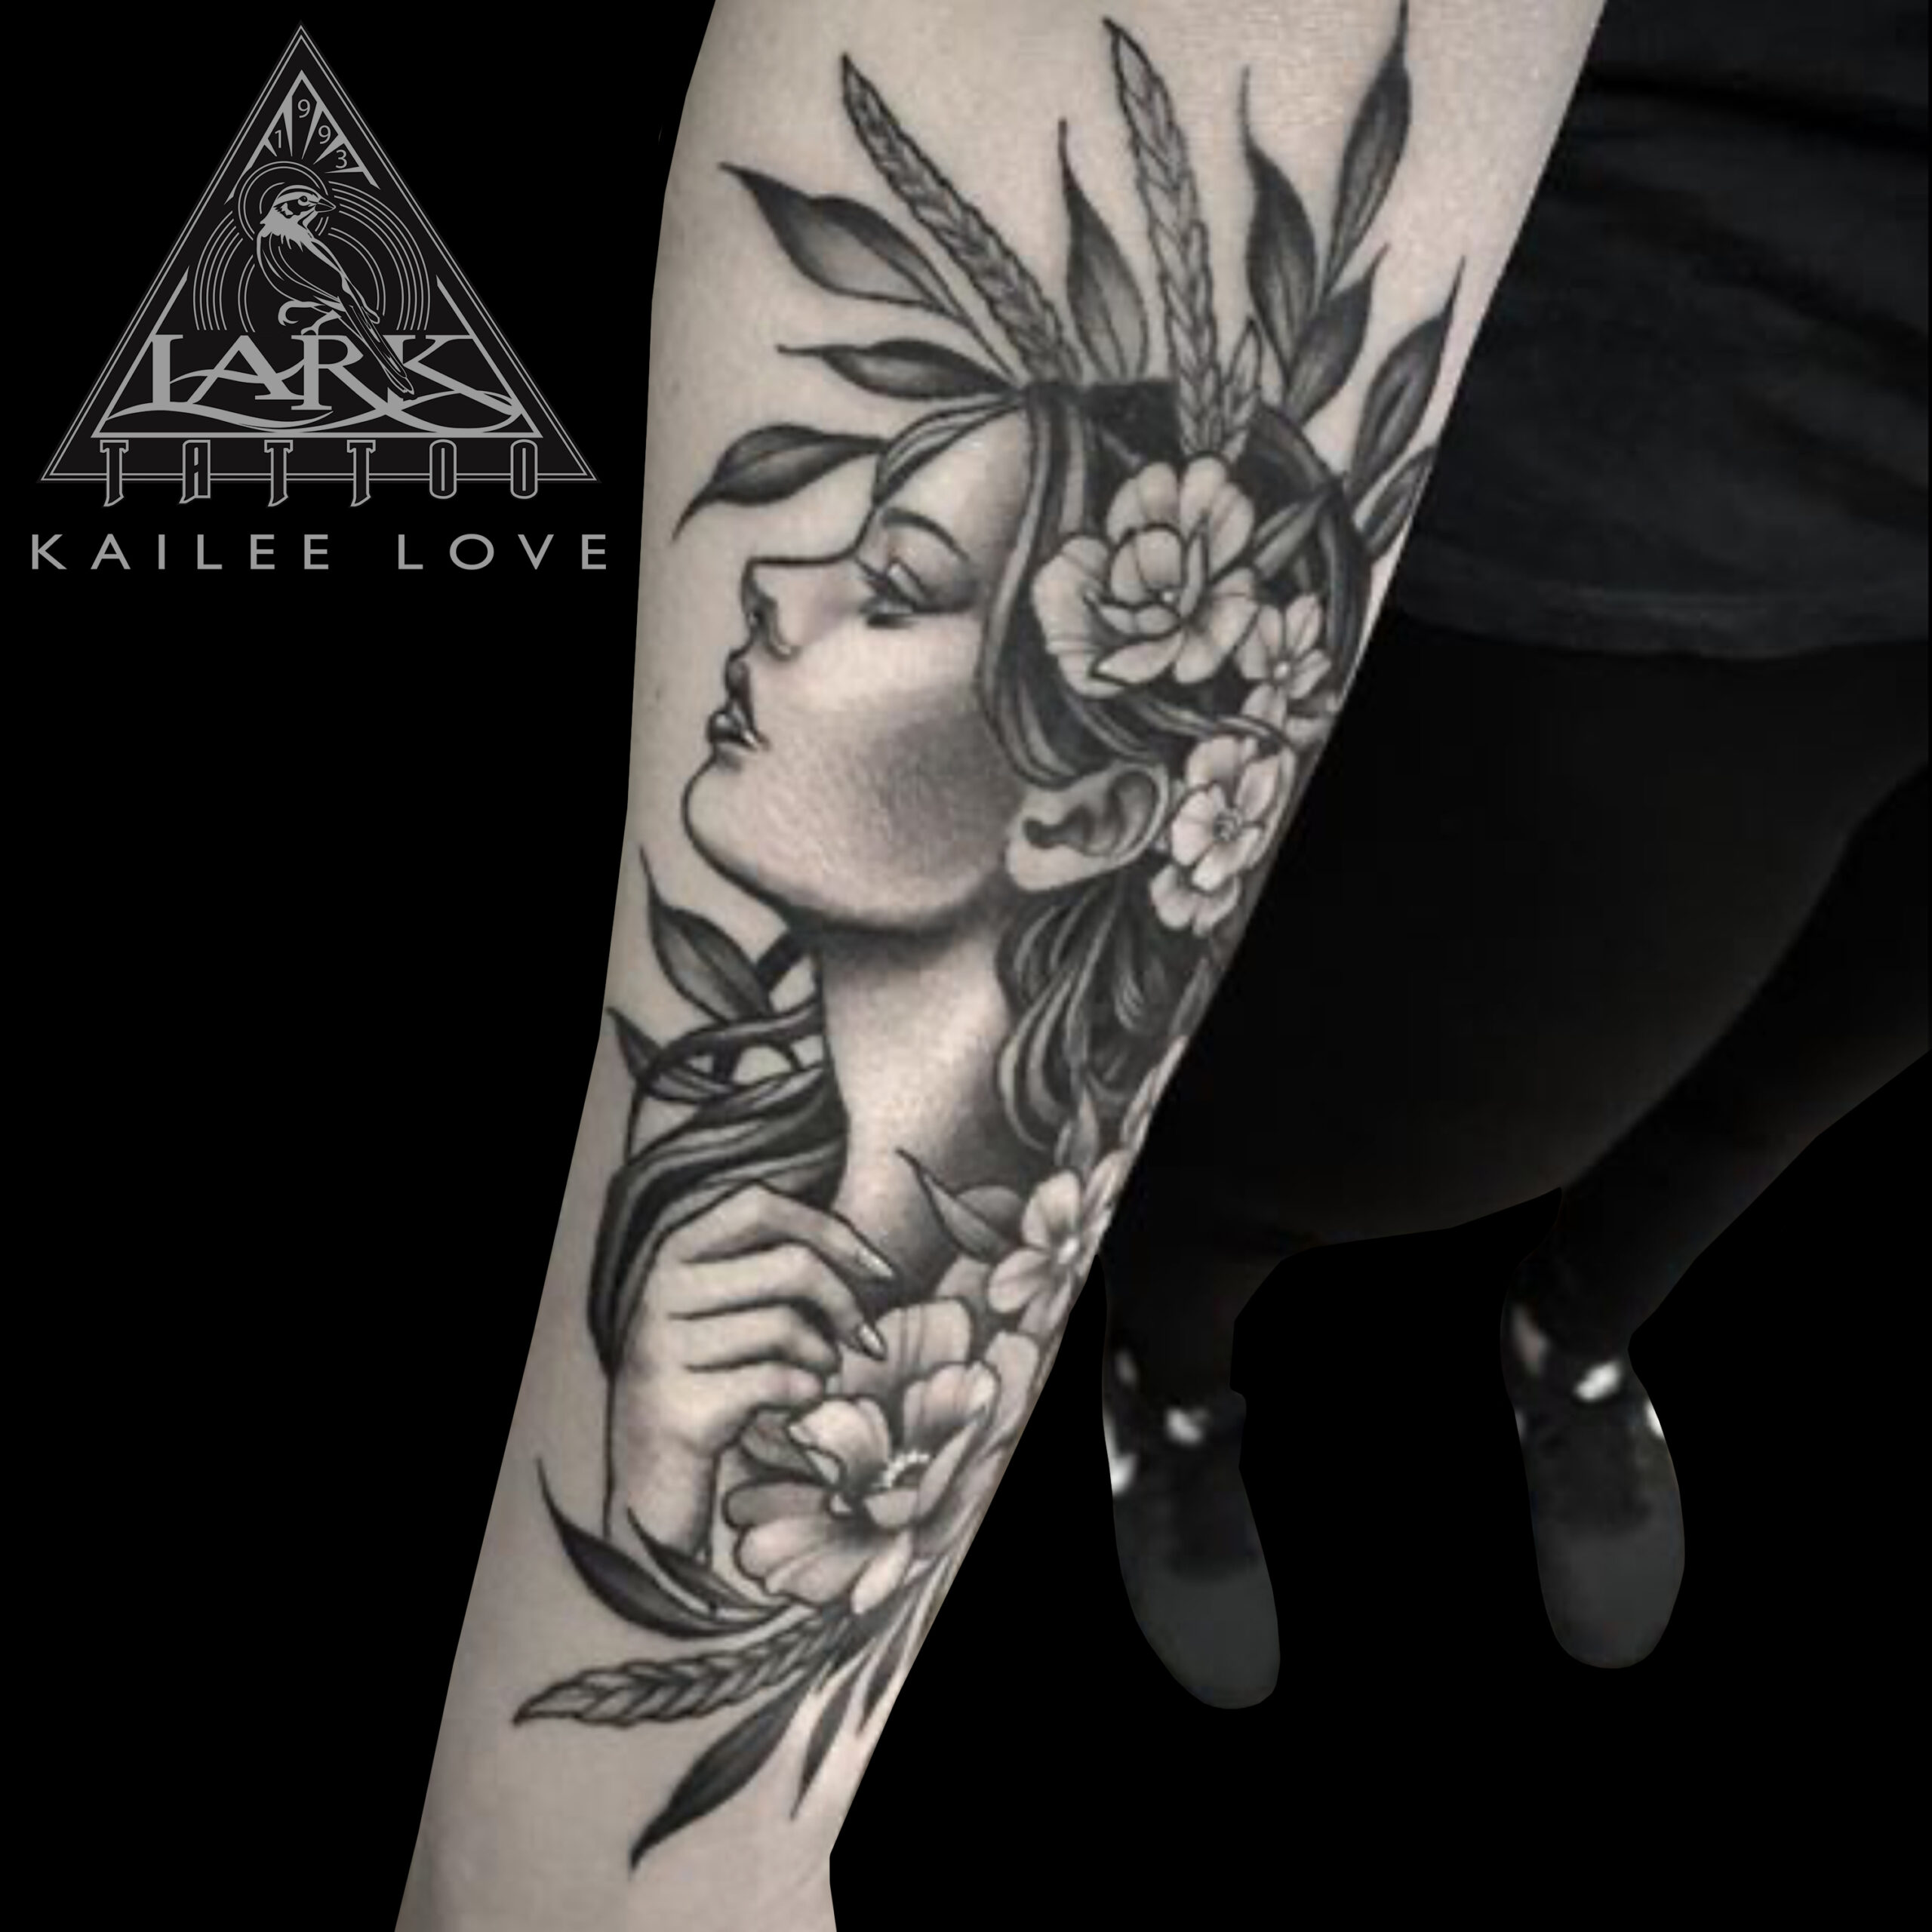 LarkTattoo, KaileeLove, KaileeLoveTattoo, KaileeLoveLarkTattoo, Tattoo, Tattoos, Illustration, IllustrationTattoo, Blackwork, BlackworkTattoo, BlackAndGray, BlackAndGrayTattoo, BlackAndGrey, BlackAndGreyTattoo, Flowers, FlowersTattoo, LadyHead, LadyHeadTattoo, NatureWoman, NatureWomanTattoo, NatureTattoo, FemaleTattooer, FemaleArtist, LadyTattooer, BNG, BNGTattoo, BNKInkSociety, TattooArtist, Tattoist, Tattooer, LongIslandTattooArtist, LongIslandTattooer, LongIslandTattoo, TattooOfTheDay, Tat, Tats, Tatts, Tatted, Inked, Ink, TattooInk, AmazingInk, AmazingTattoo, BodyArt, LarkTattooWestbury, Westbury, LongIsland, NY, NewYork, USA, Art, Tattedup, InkedUp, LarkTattoos